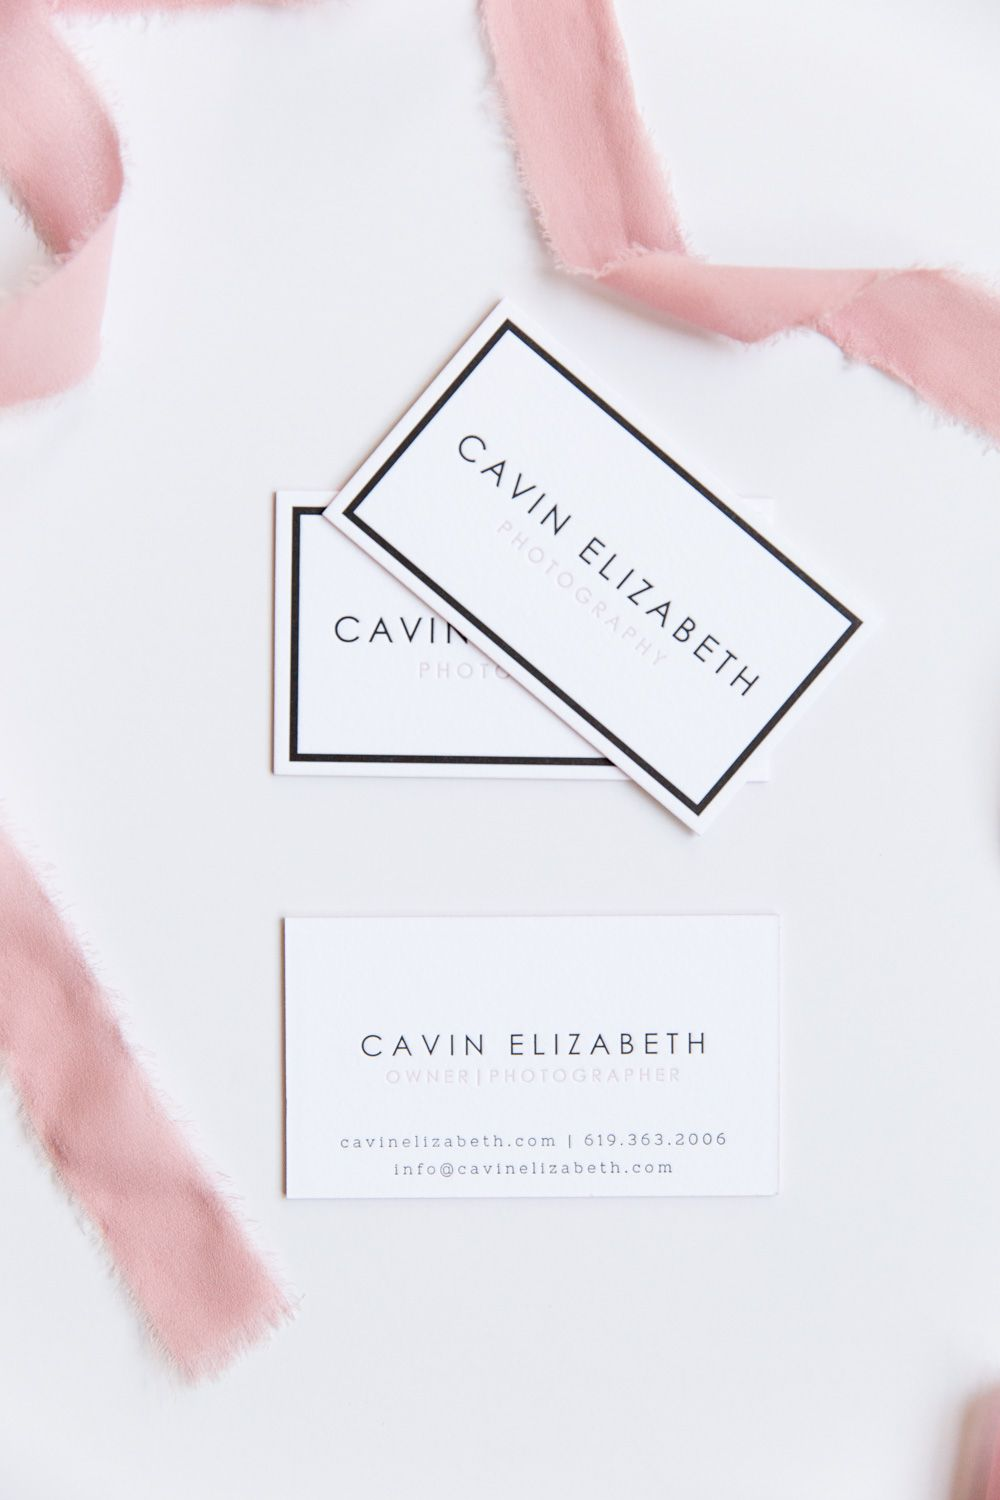 Cavin elizabeth letterpress business cards photography business cavin elizabeth letterpress business cards feminine chic minimal luxury photography business cards with white blush and black inks reheart Gallery